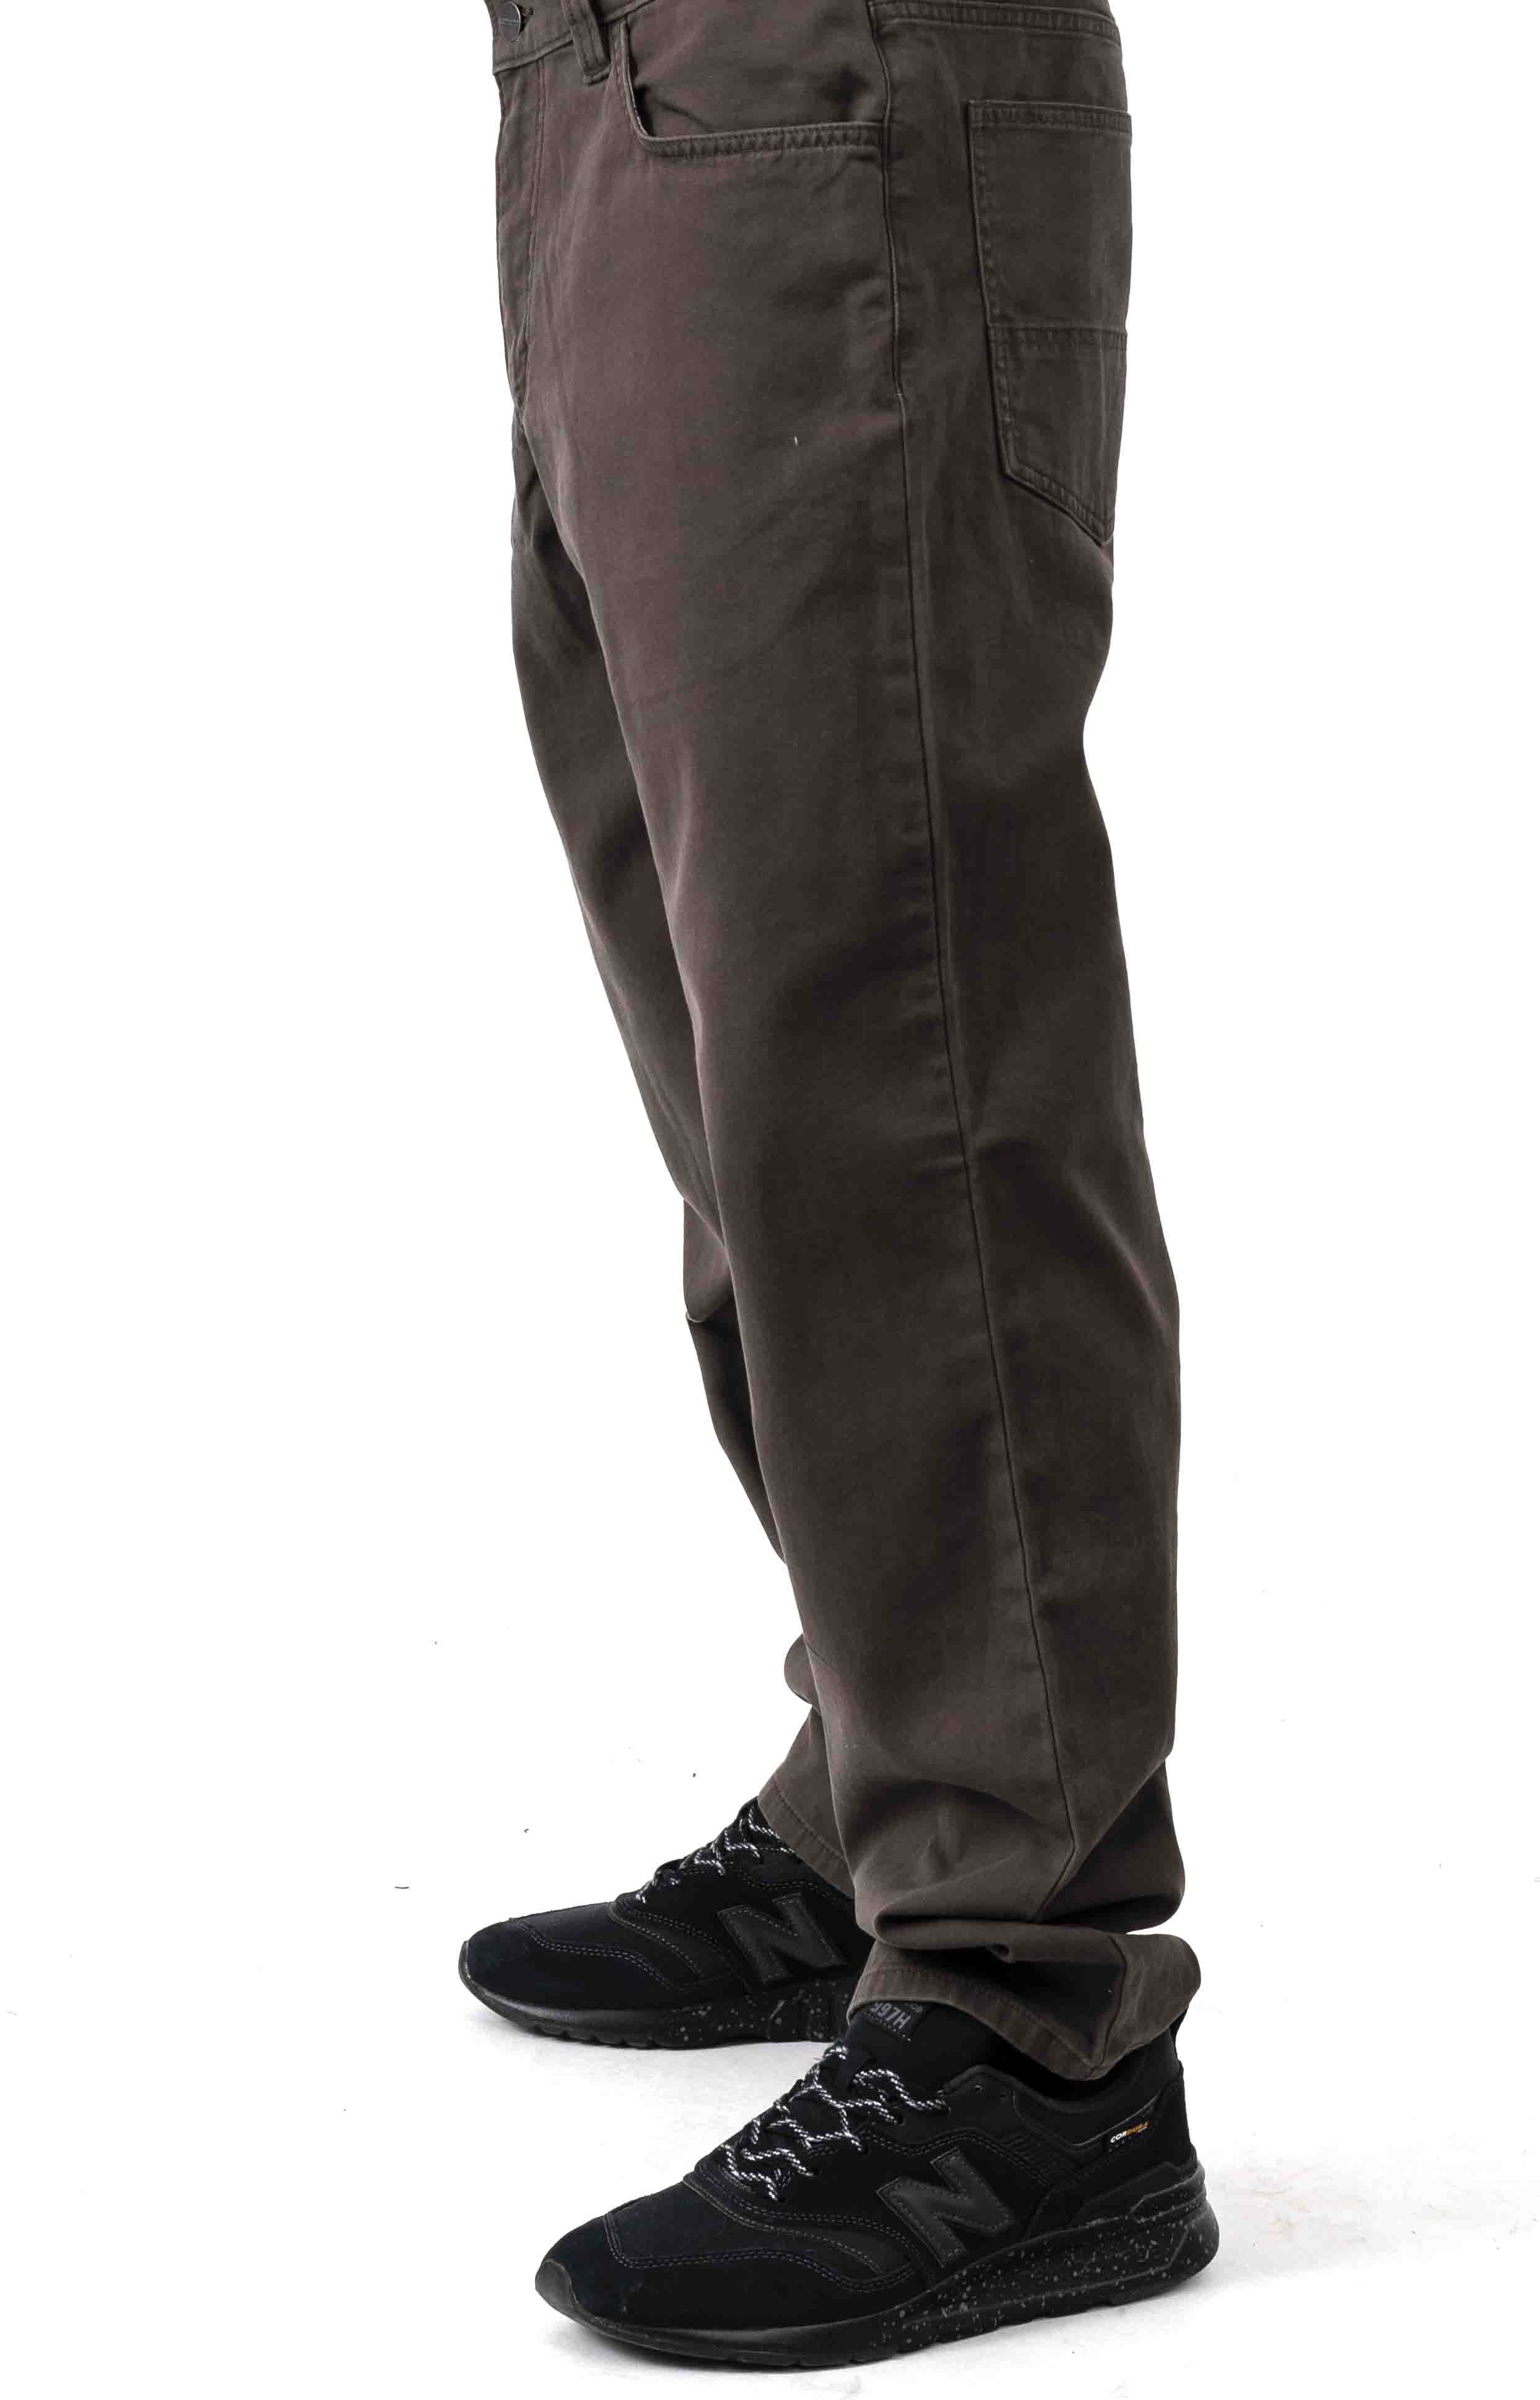 (102517) Rugged Flex Rigby 5 Pocket Work Pant - Dark Coffee